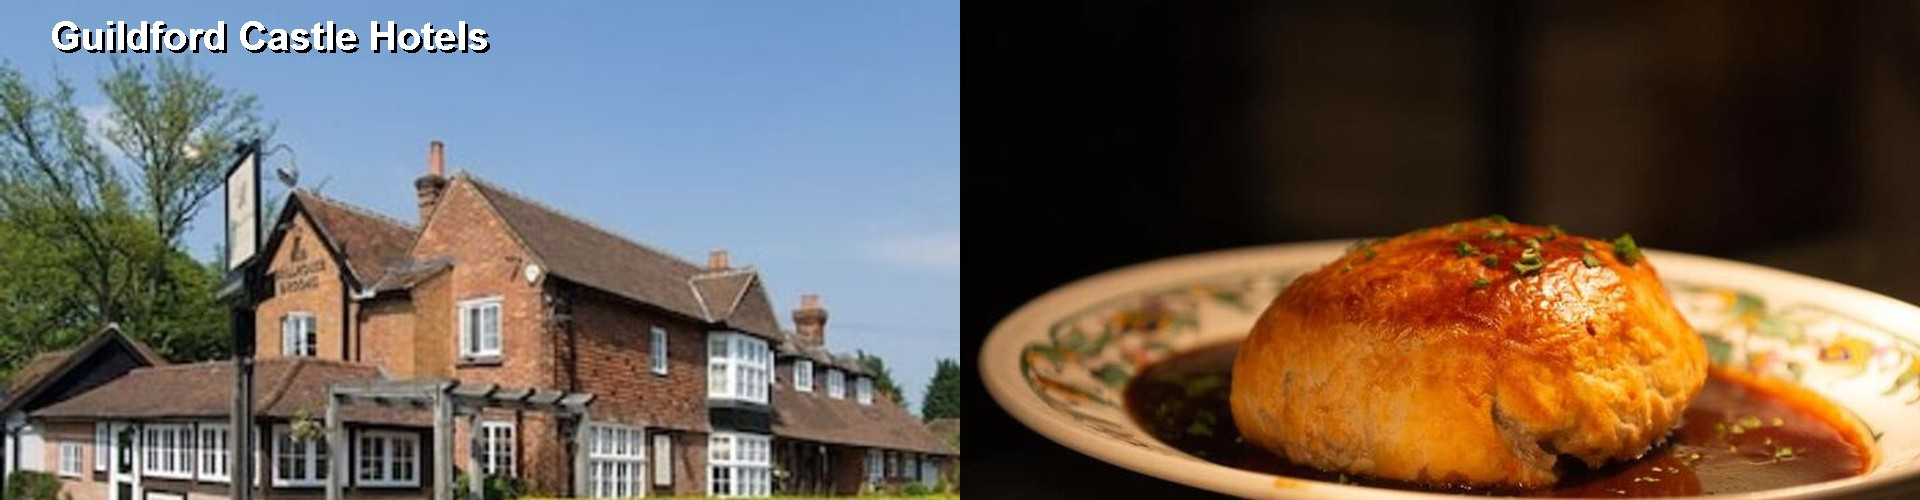 5 Best Hotels near Guildford Castle